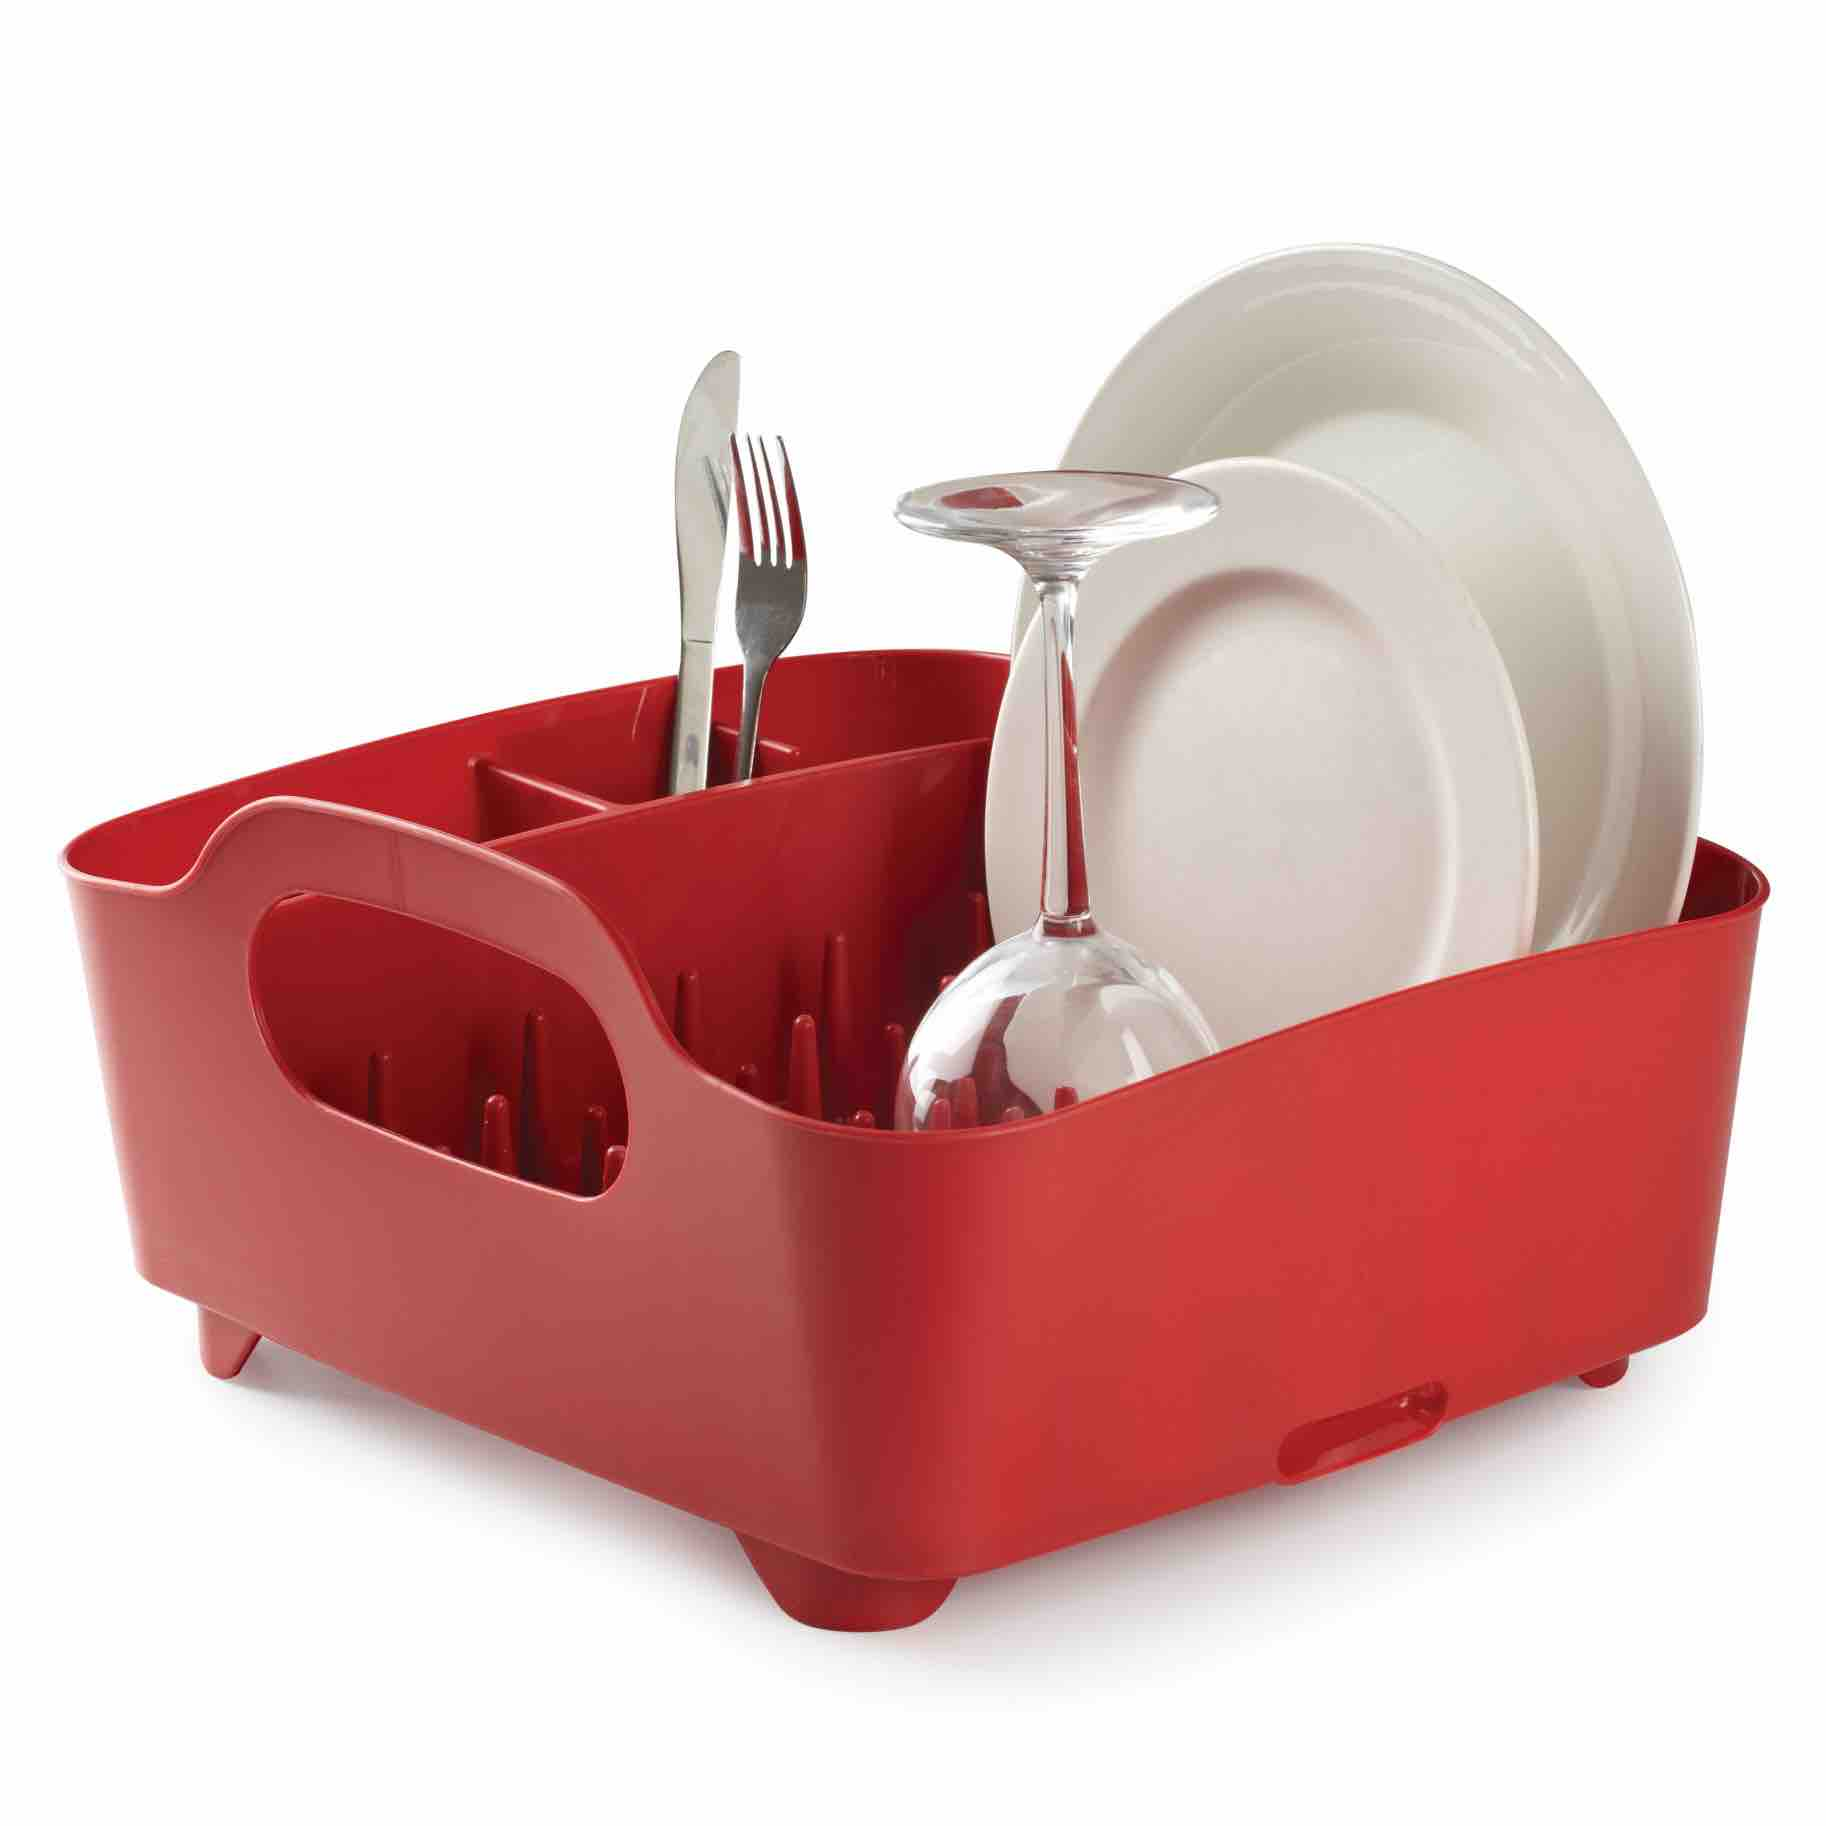 Umbra Tub Dish Rack | Red